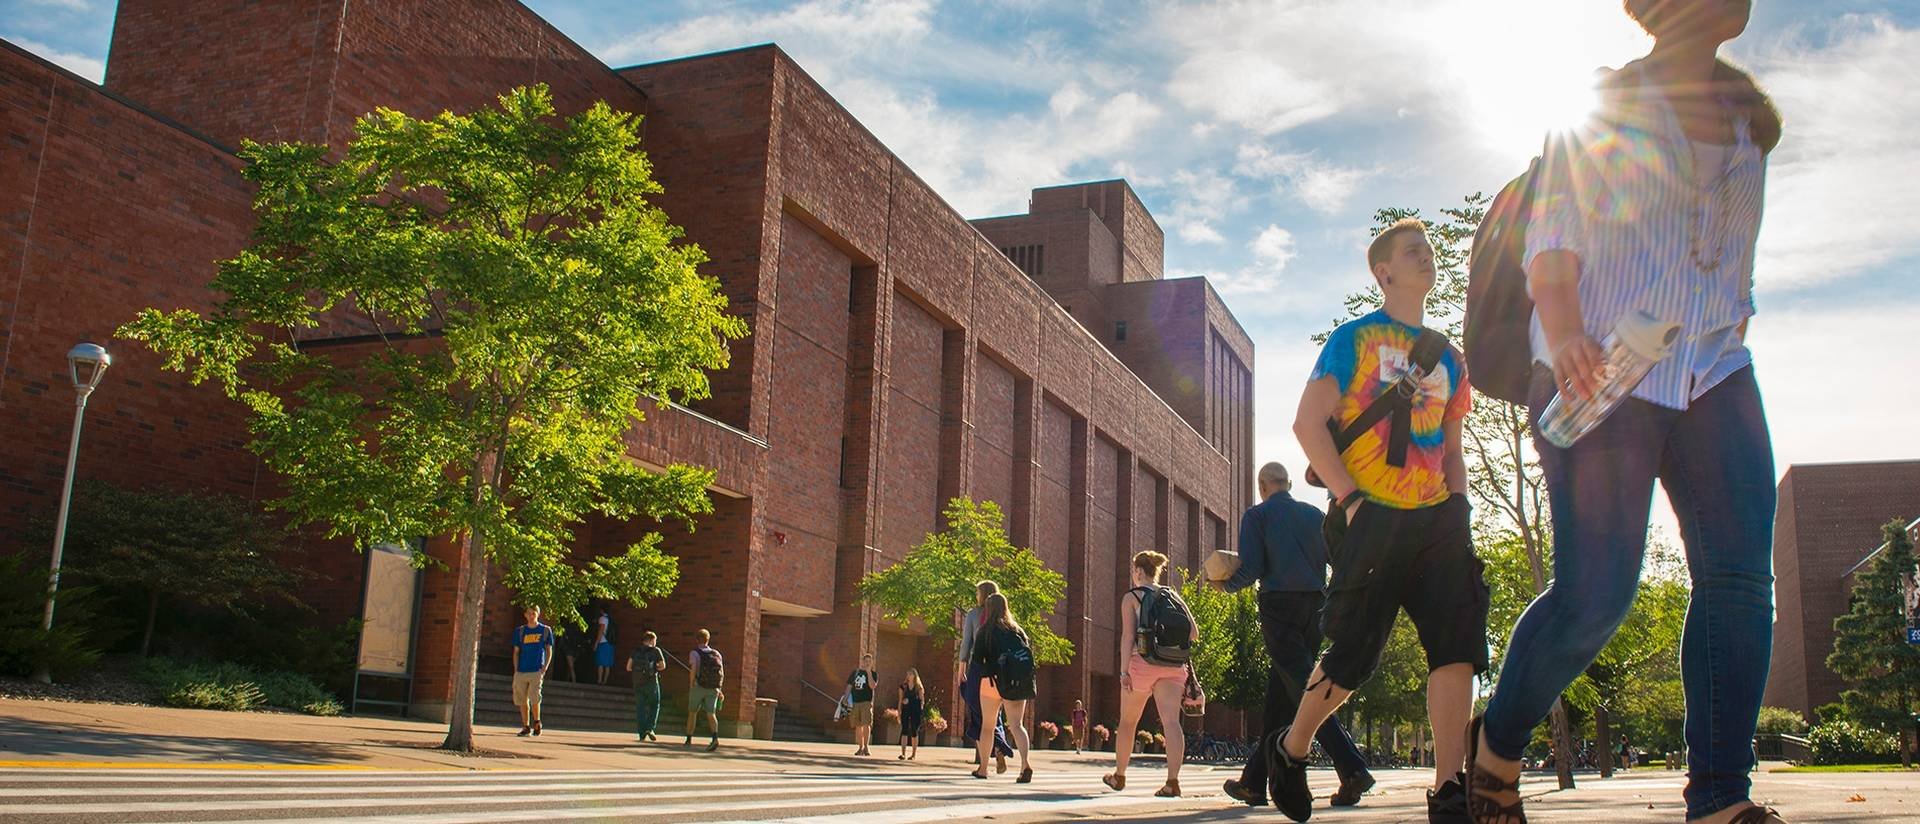 Students walking on campus on a summer day